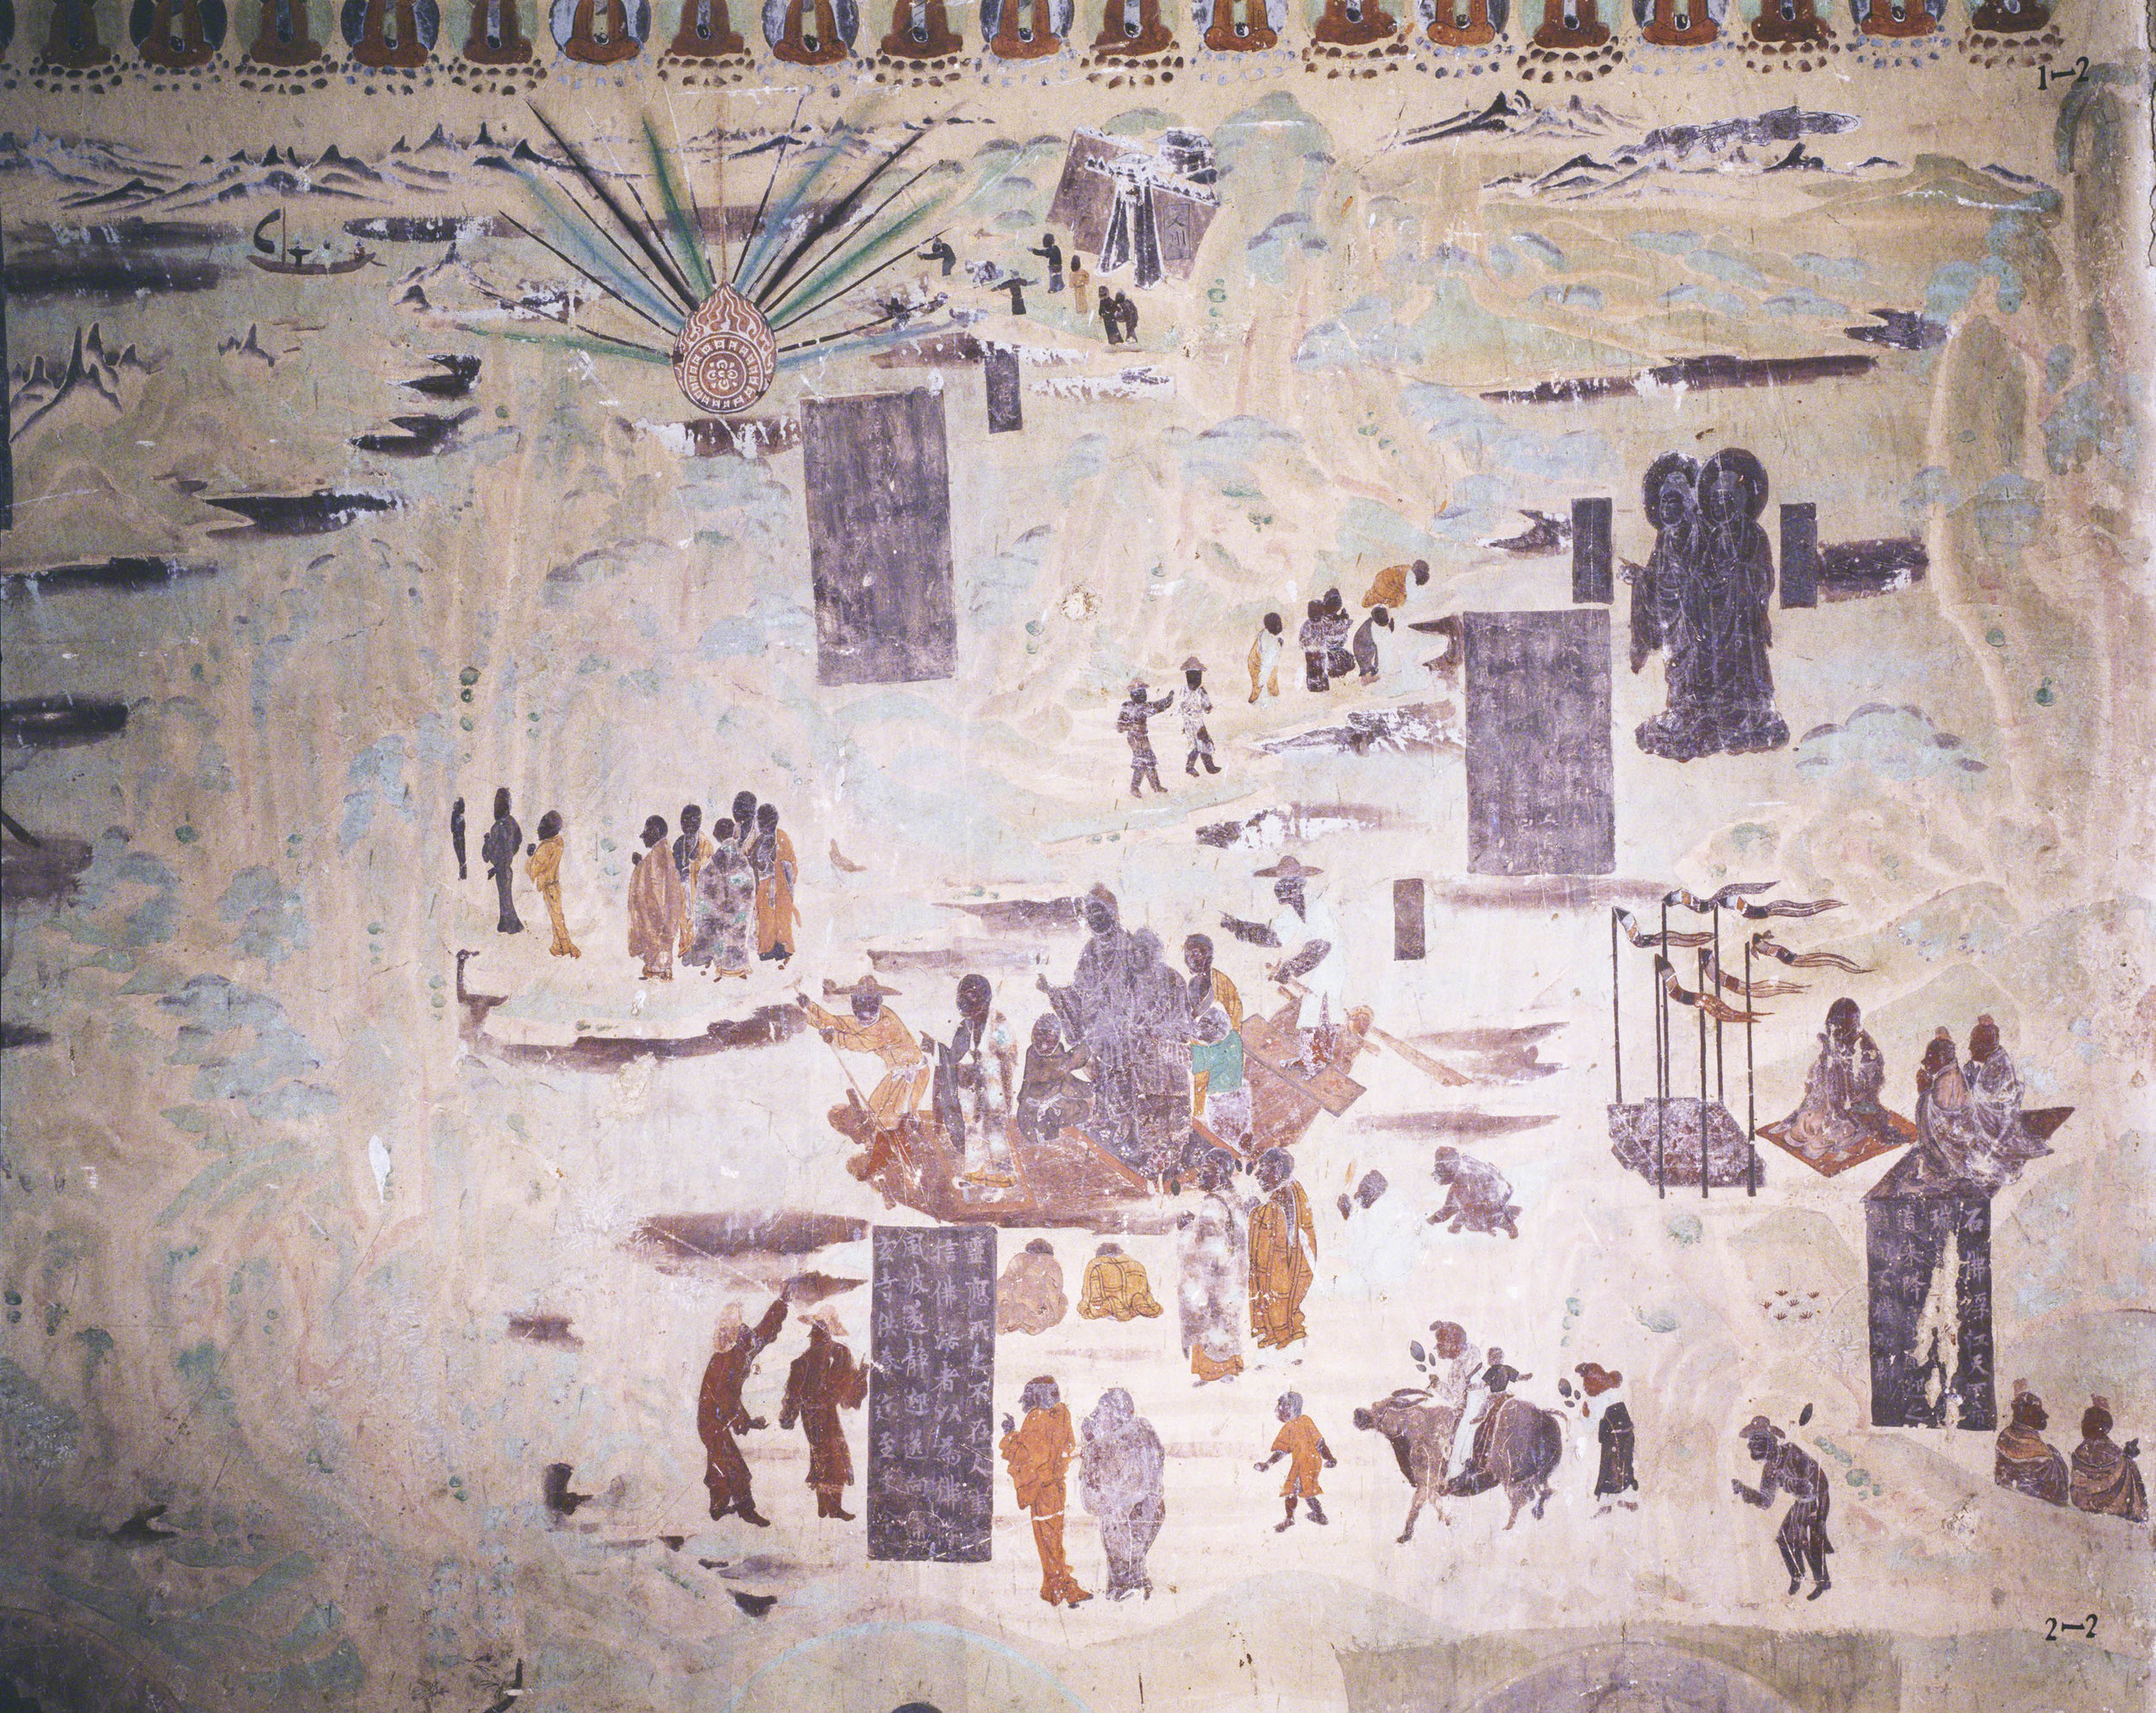 Two Stone Buddhas Floating on the River on the south wall of Mogao Cave 323.Tang Dynasty. Image courtesy of the Dunhuang Academy.